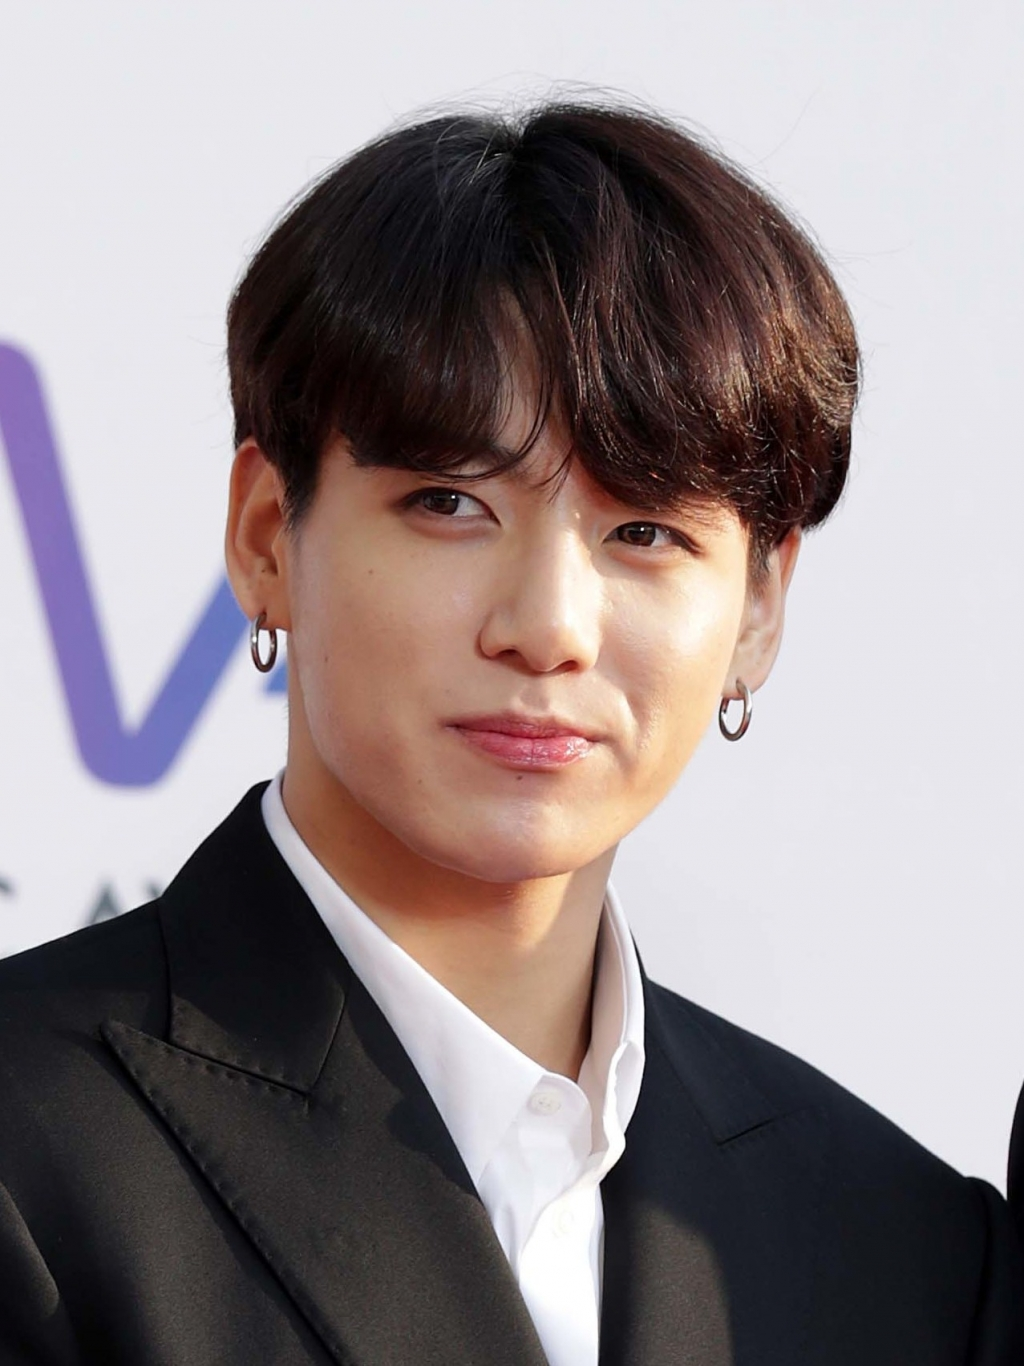 jungkook bts la nam ca si than tuong kpop co ca khuc solo tru hang lau nhat tren billboard world digital song sales